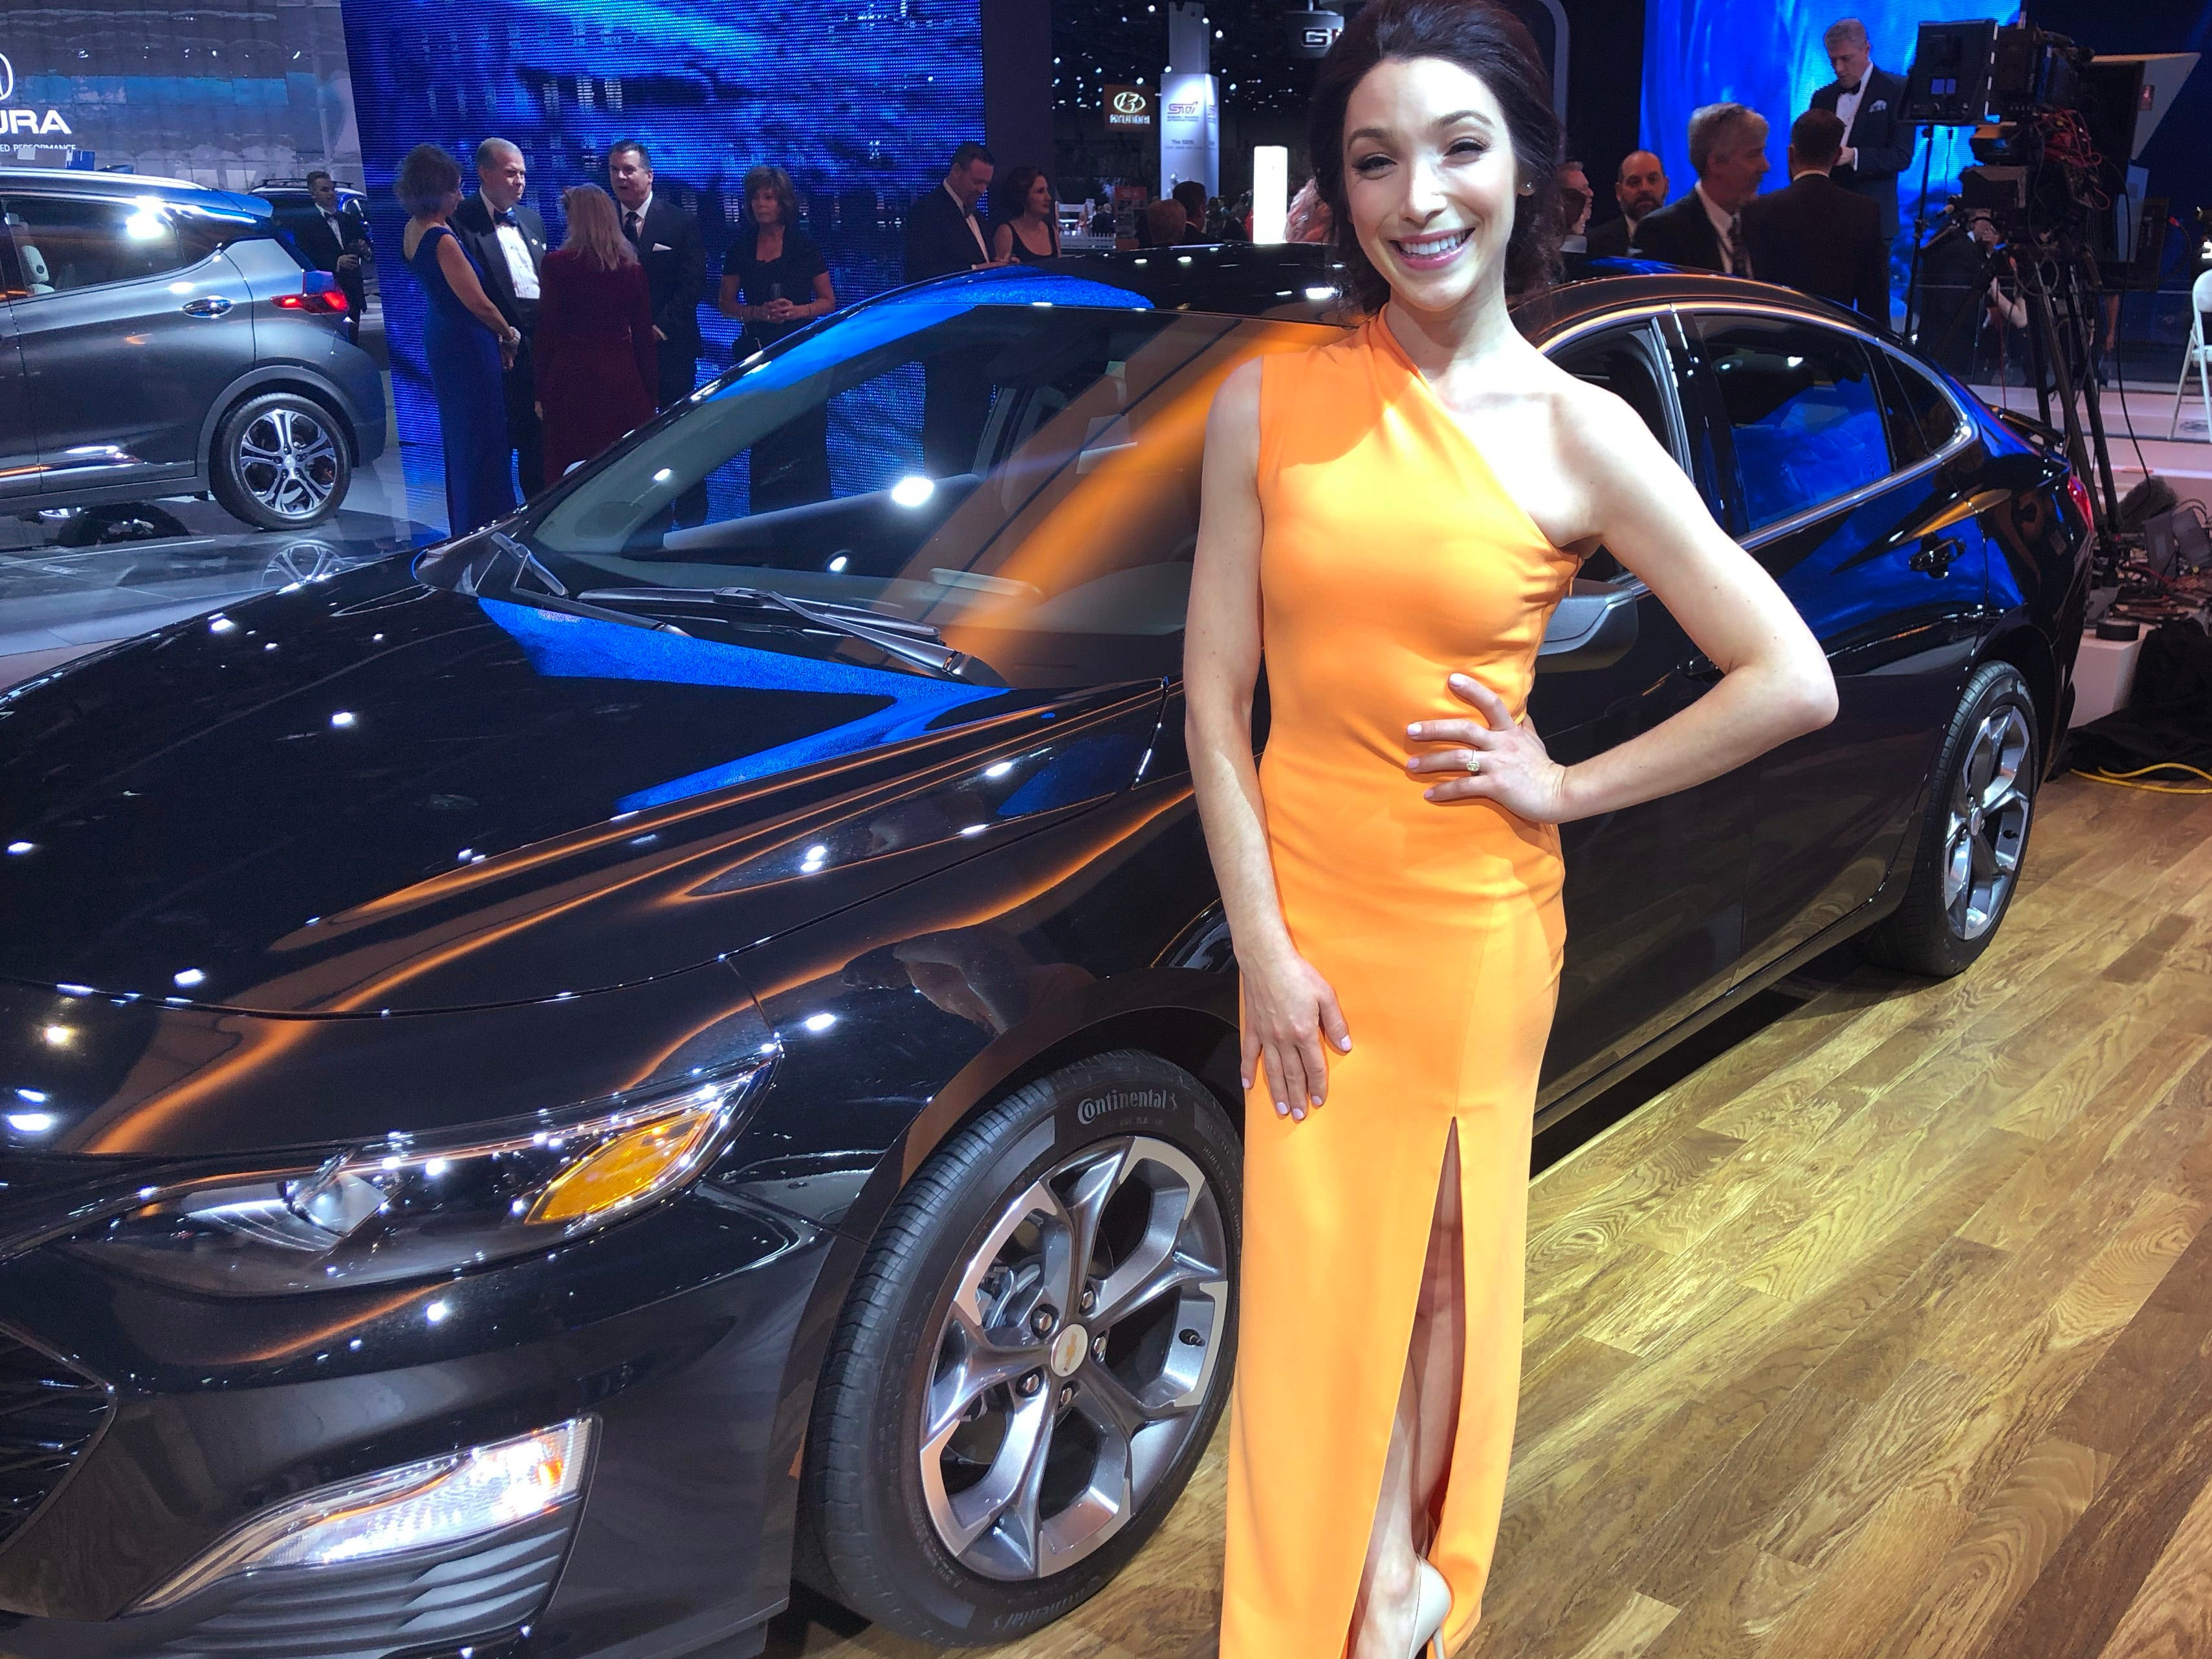 Olympic Champion figure skater Meryl Davis was looking bright in an apricot, one-shoulder gown with a slit. The Michigan native said she was excited and honored to be at the Charity Preview, and a little embarrassed to say it was her first time at the auto show.